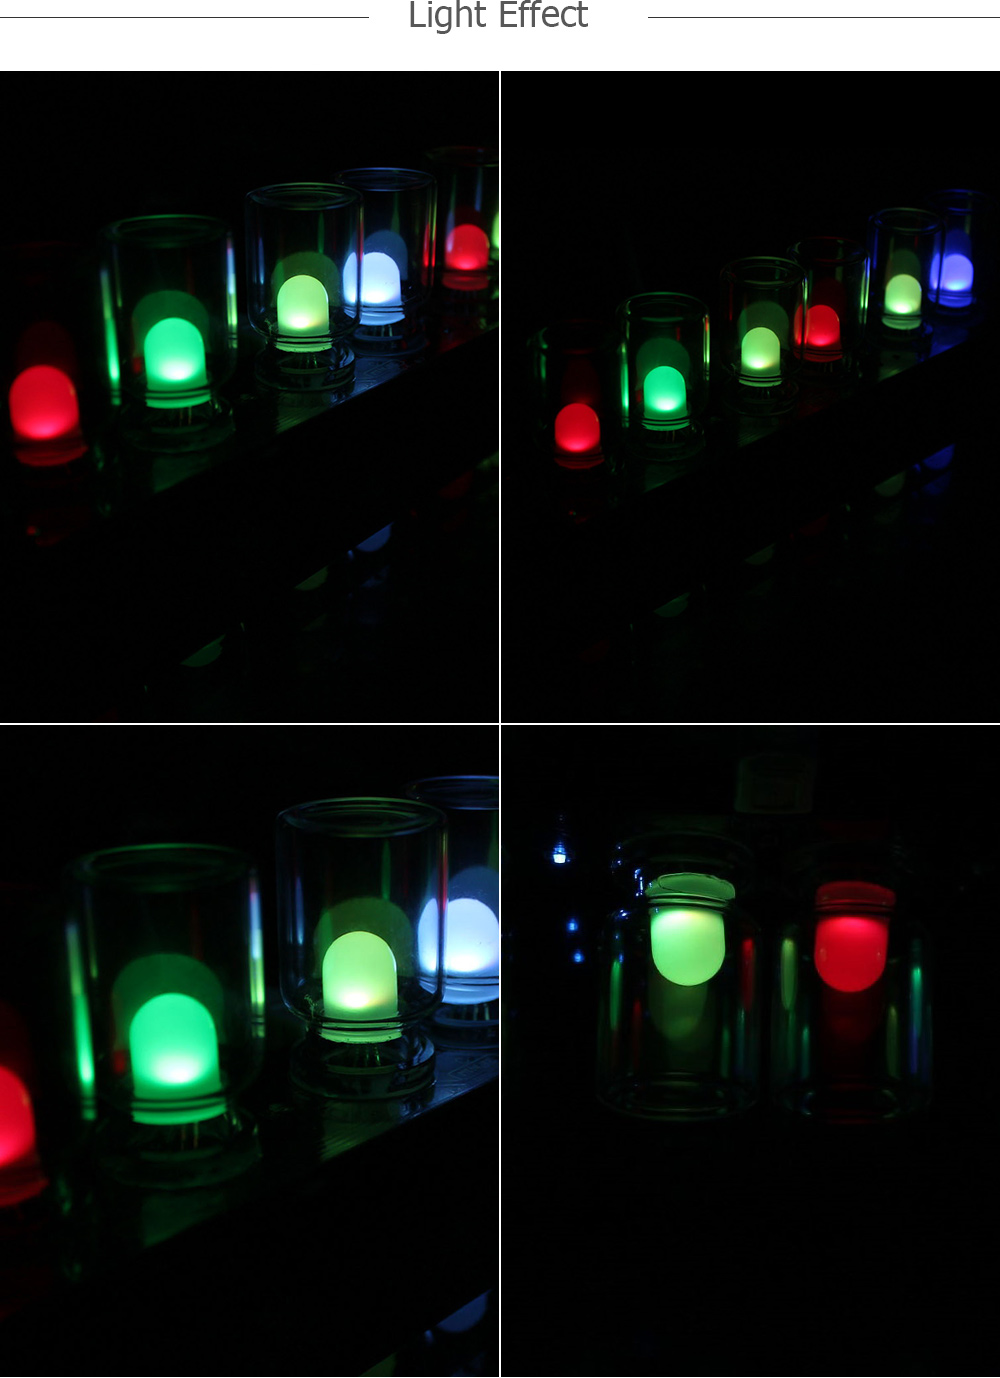 RGB LED Clock for DIY Project